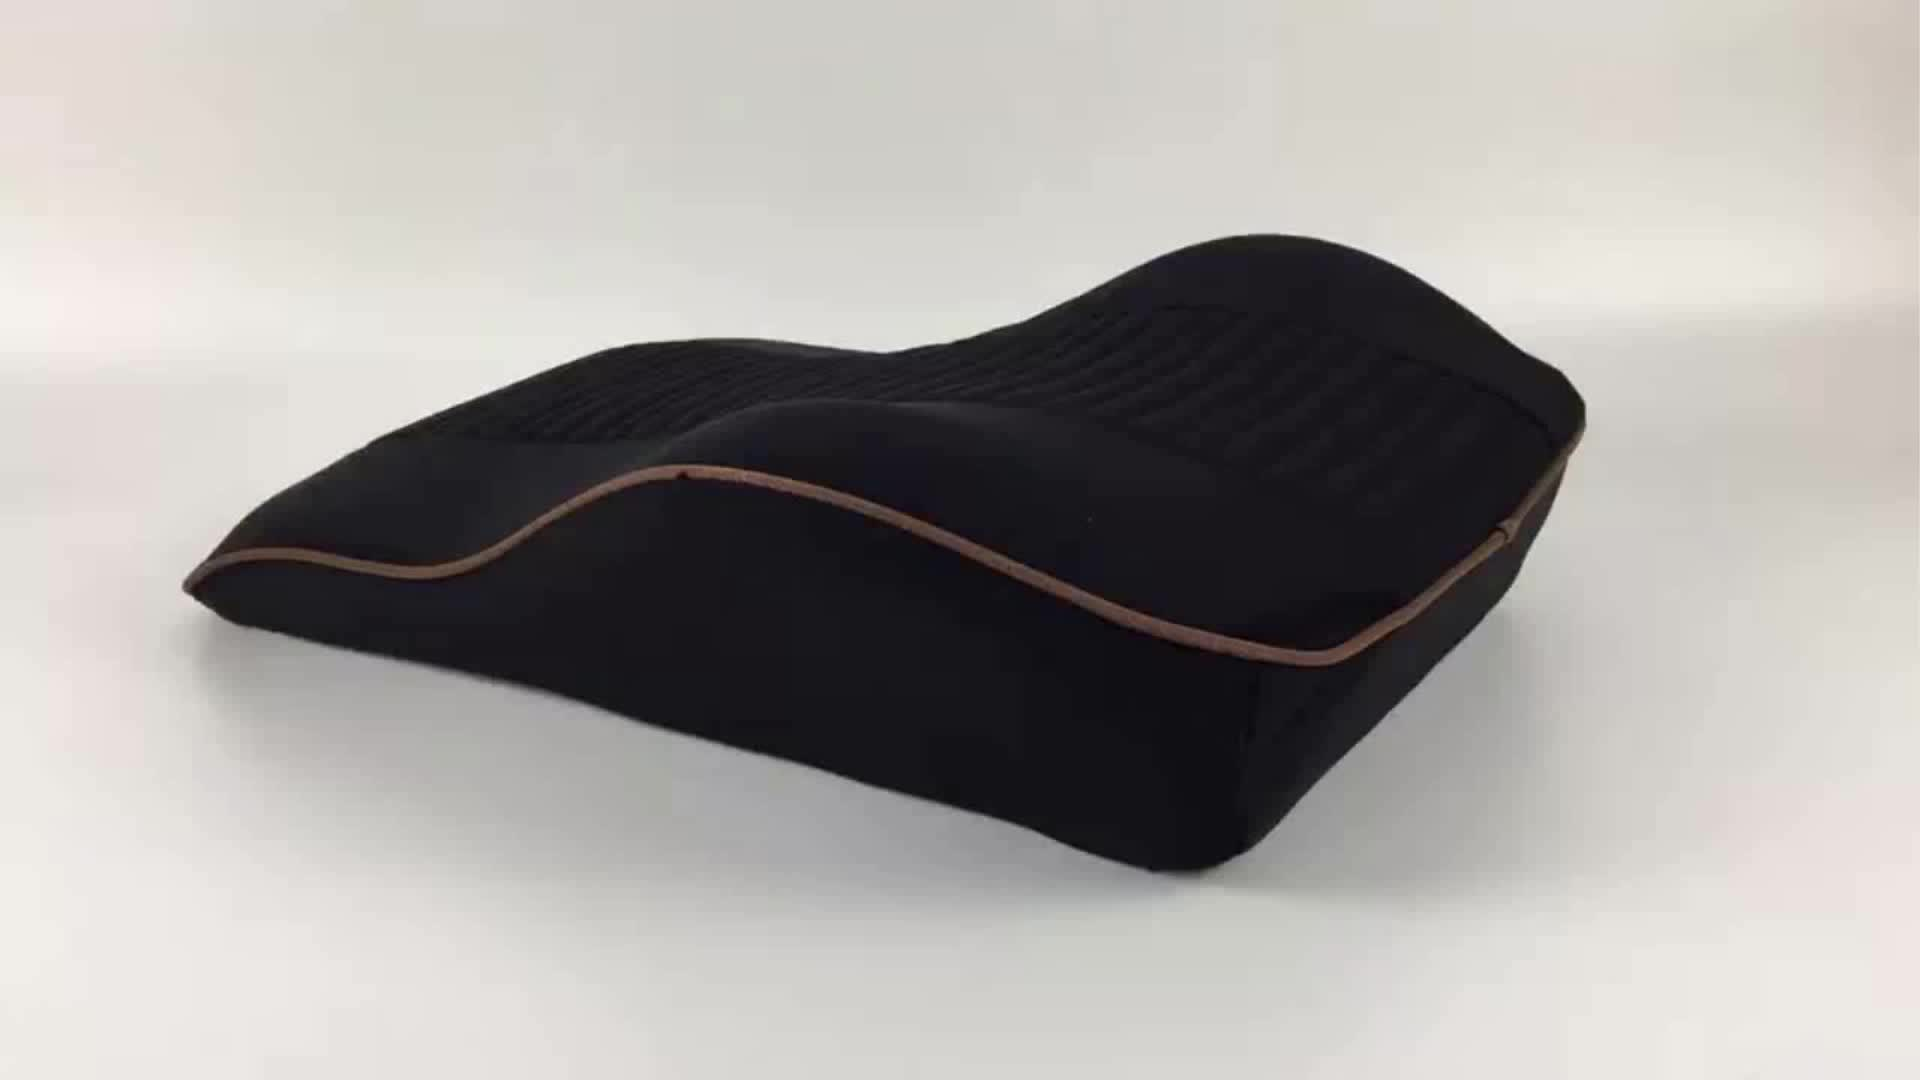 Full Support Cushion Orthopedic Design For Back Pain Relief And Support For Office Chair, Car Seat.